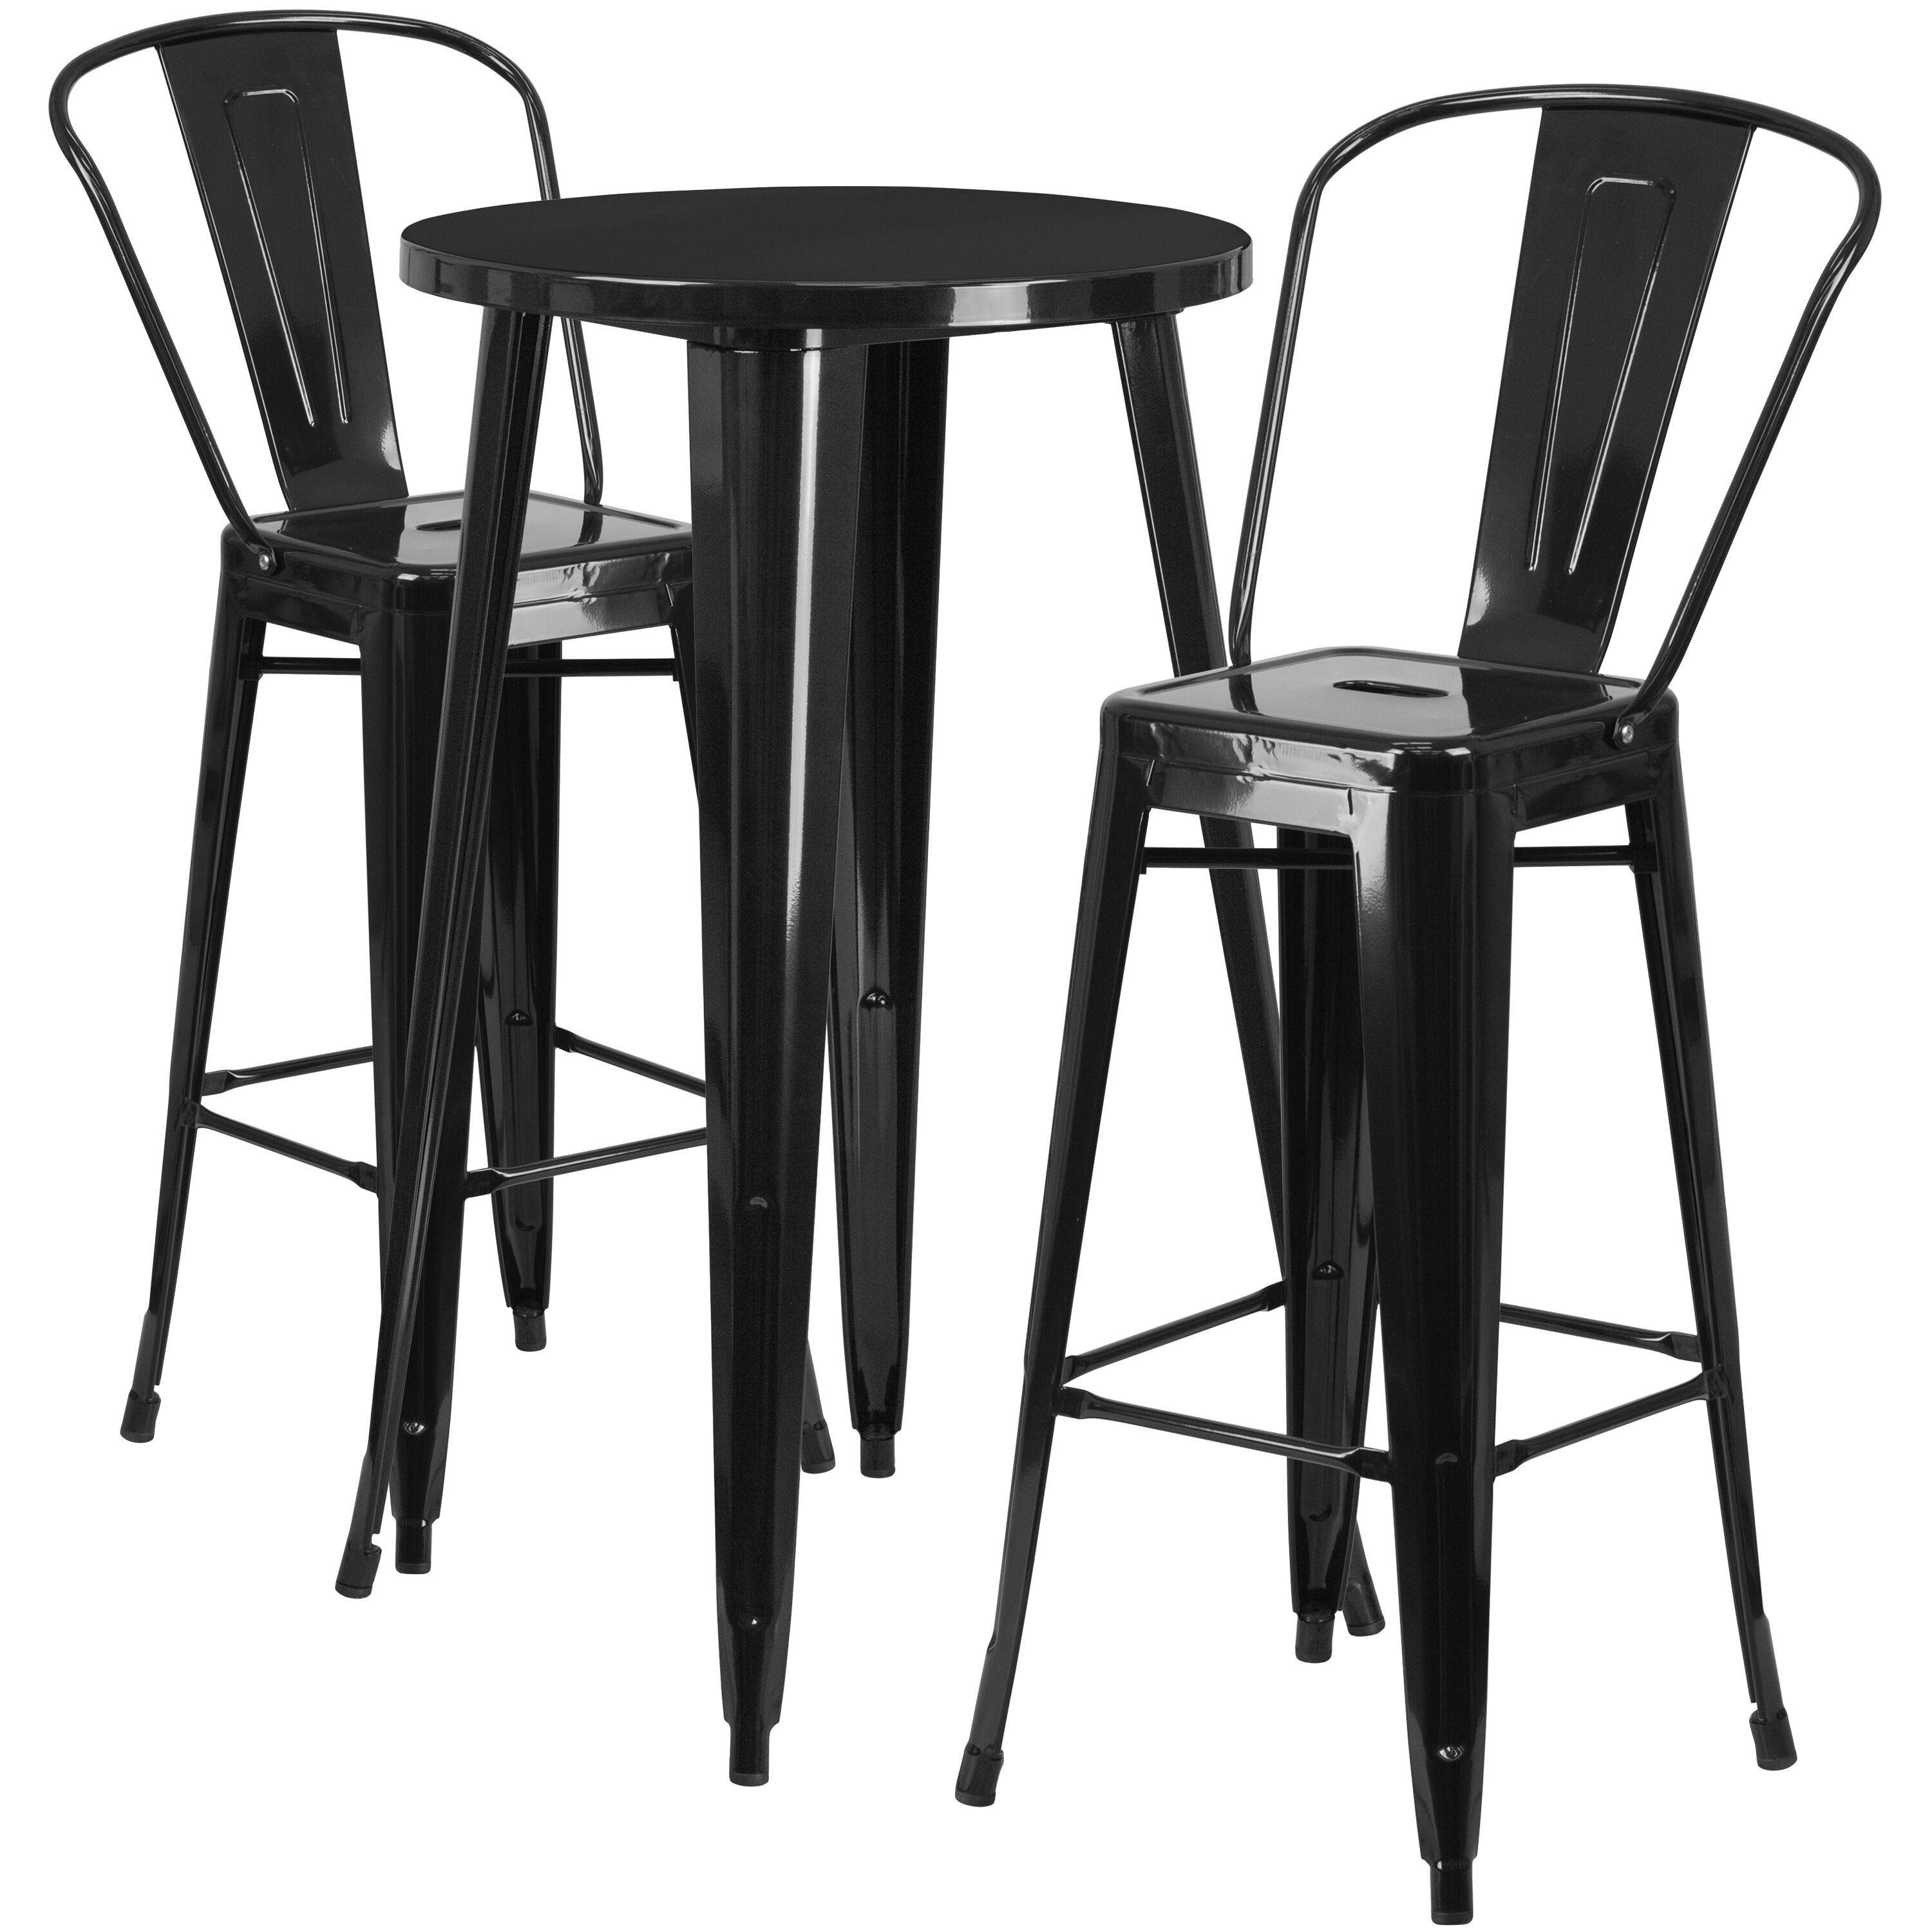 cafe chairs metal swivel lounge chair australia 24rd black bar set ch 51080bh 2 30cafe bk gg bizchair com